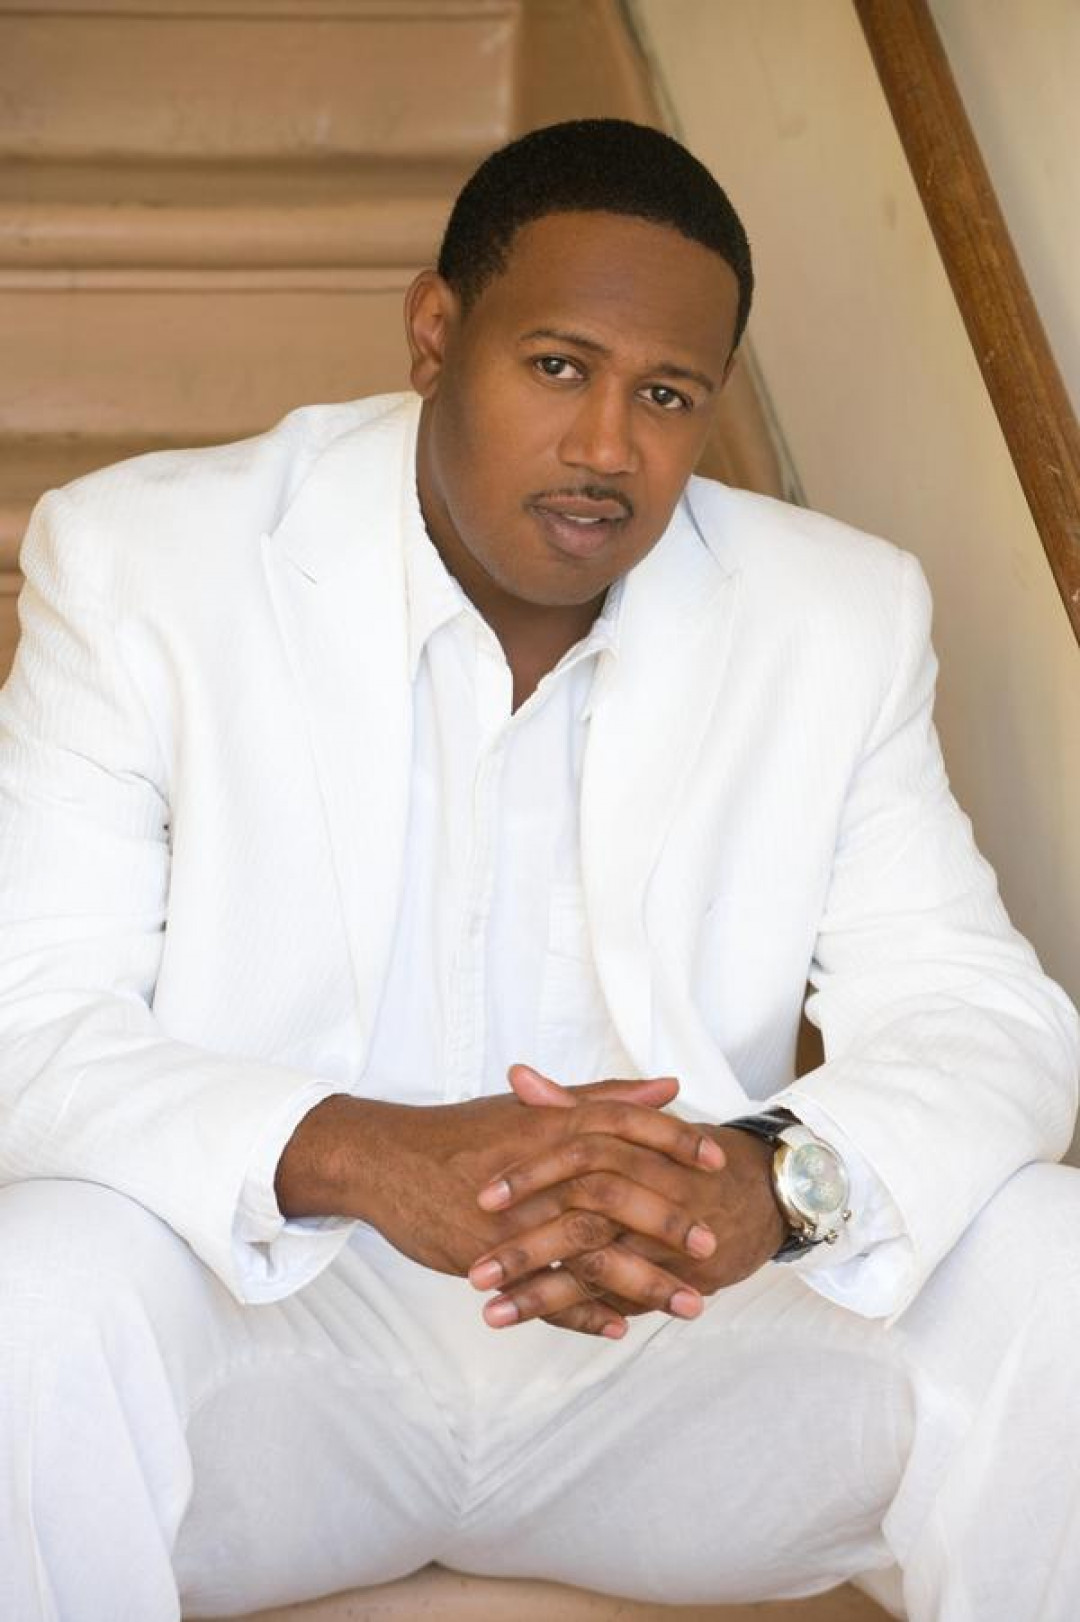 No Limit Reunion Tour featuring Master P in jacksonville